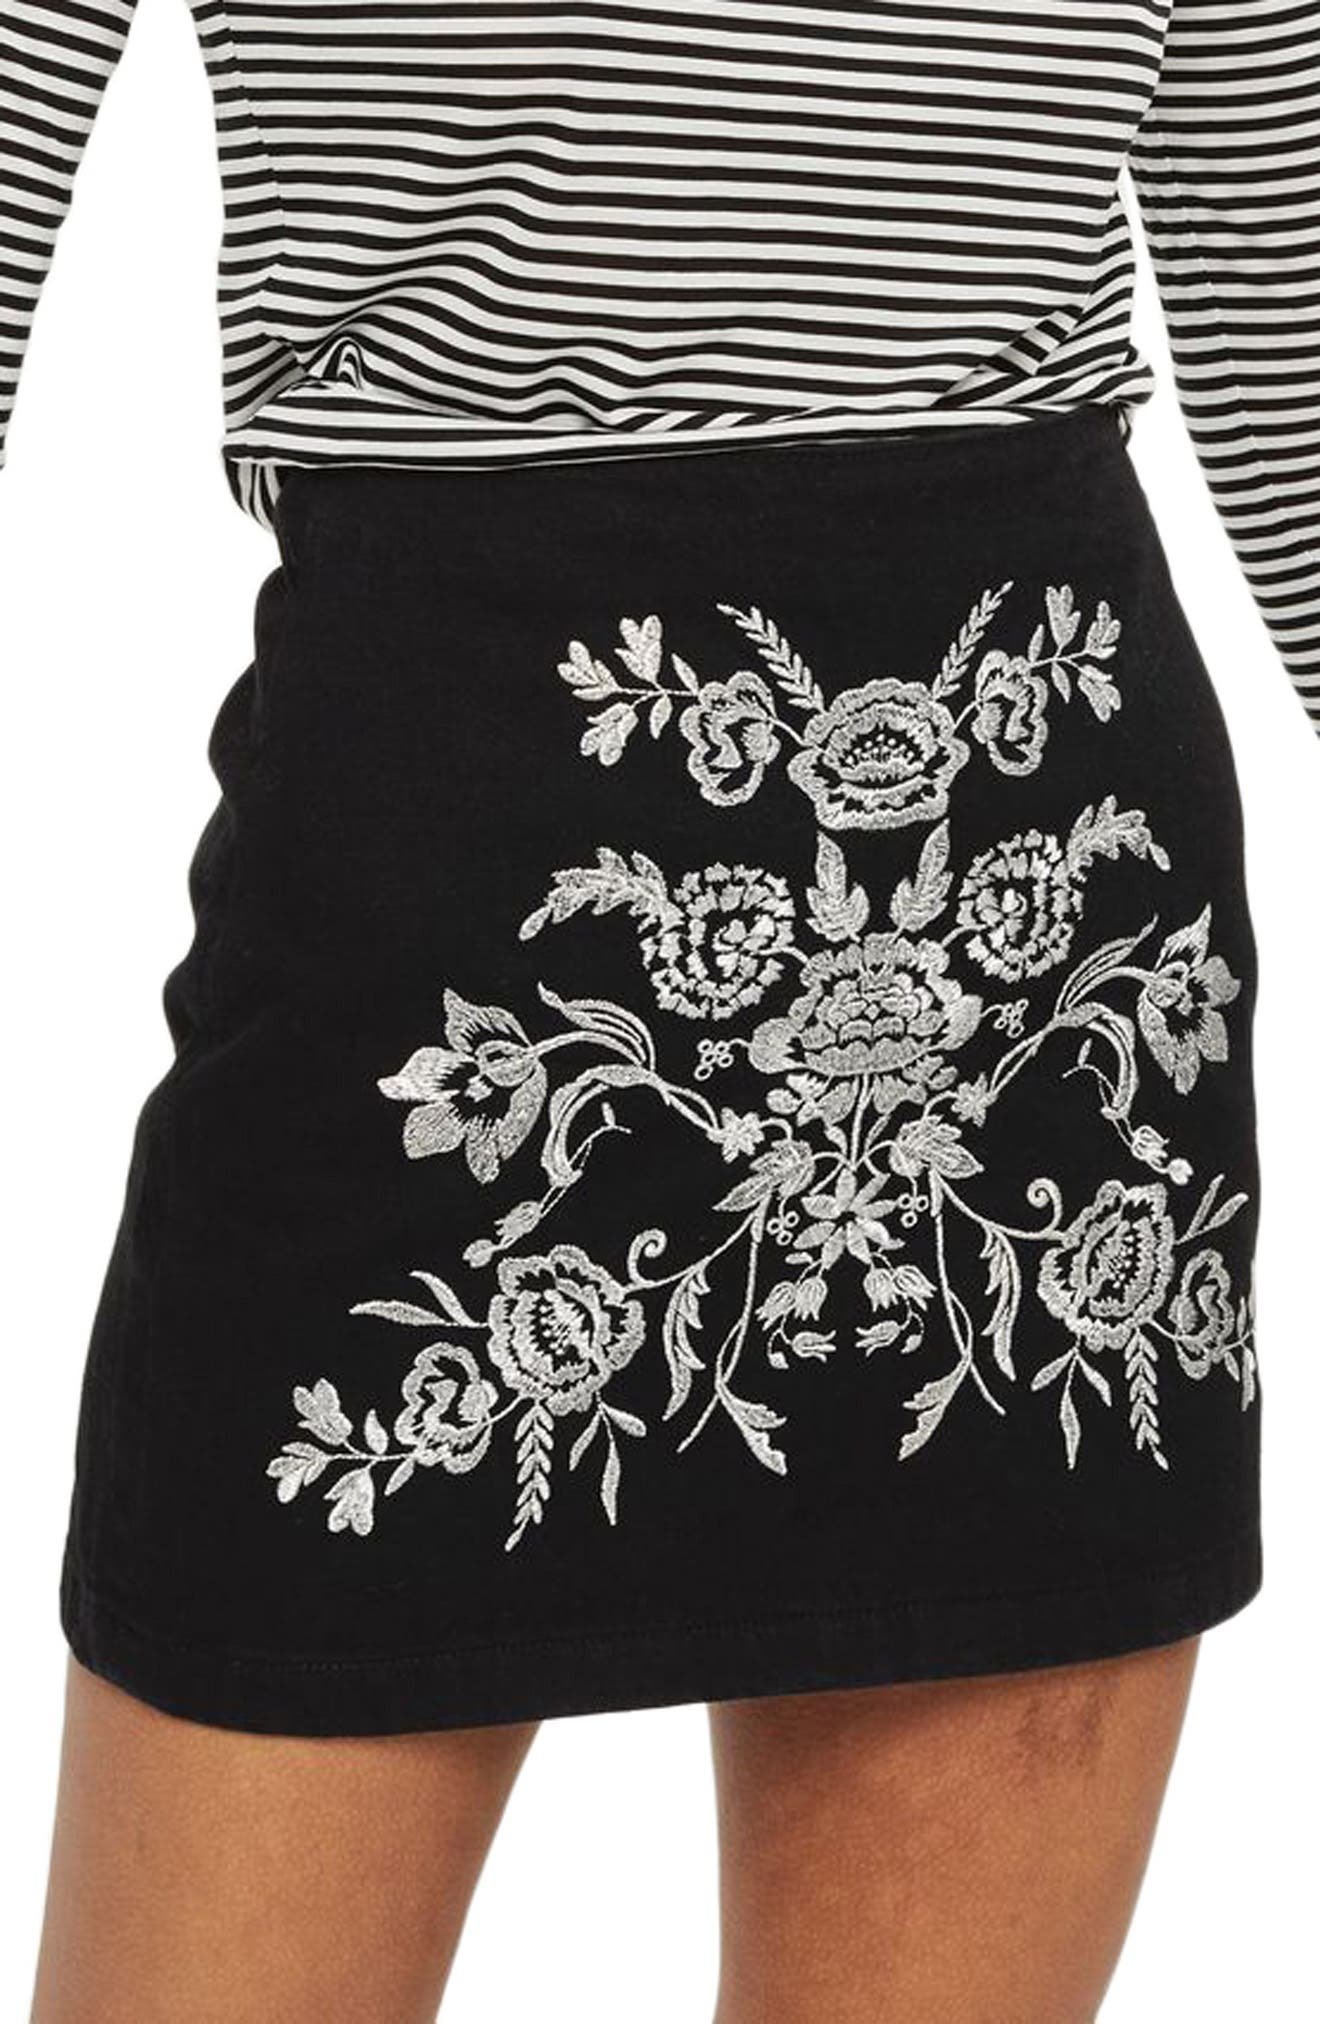 Floral Embroidered A-Line Skirt,                             Main thumbnail 1, color,                             001